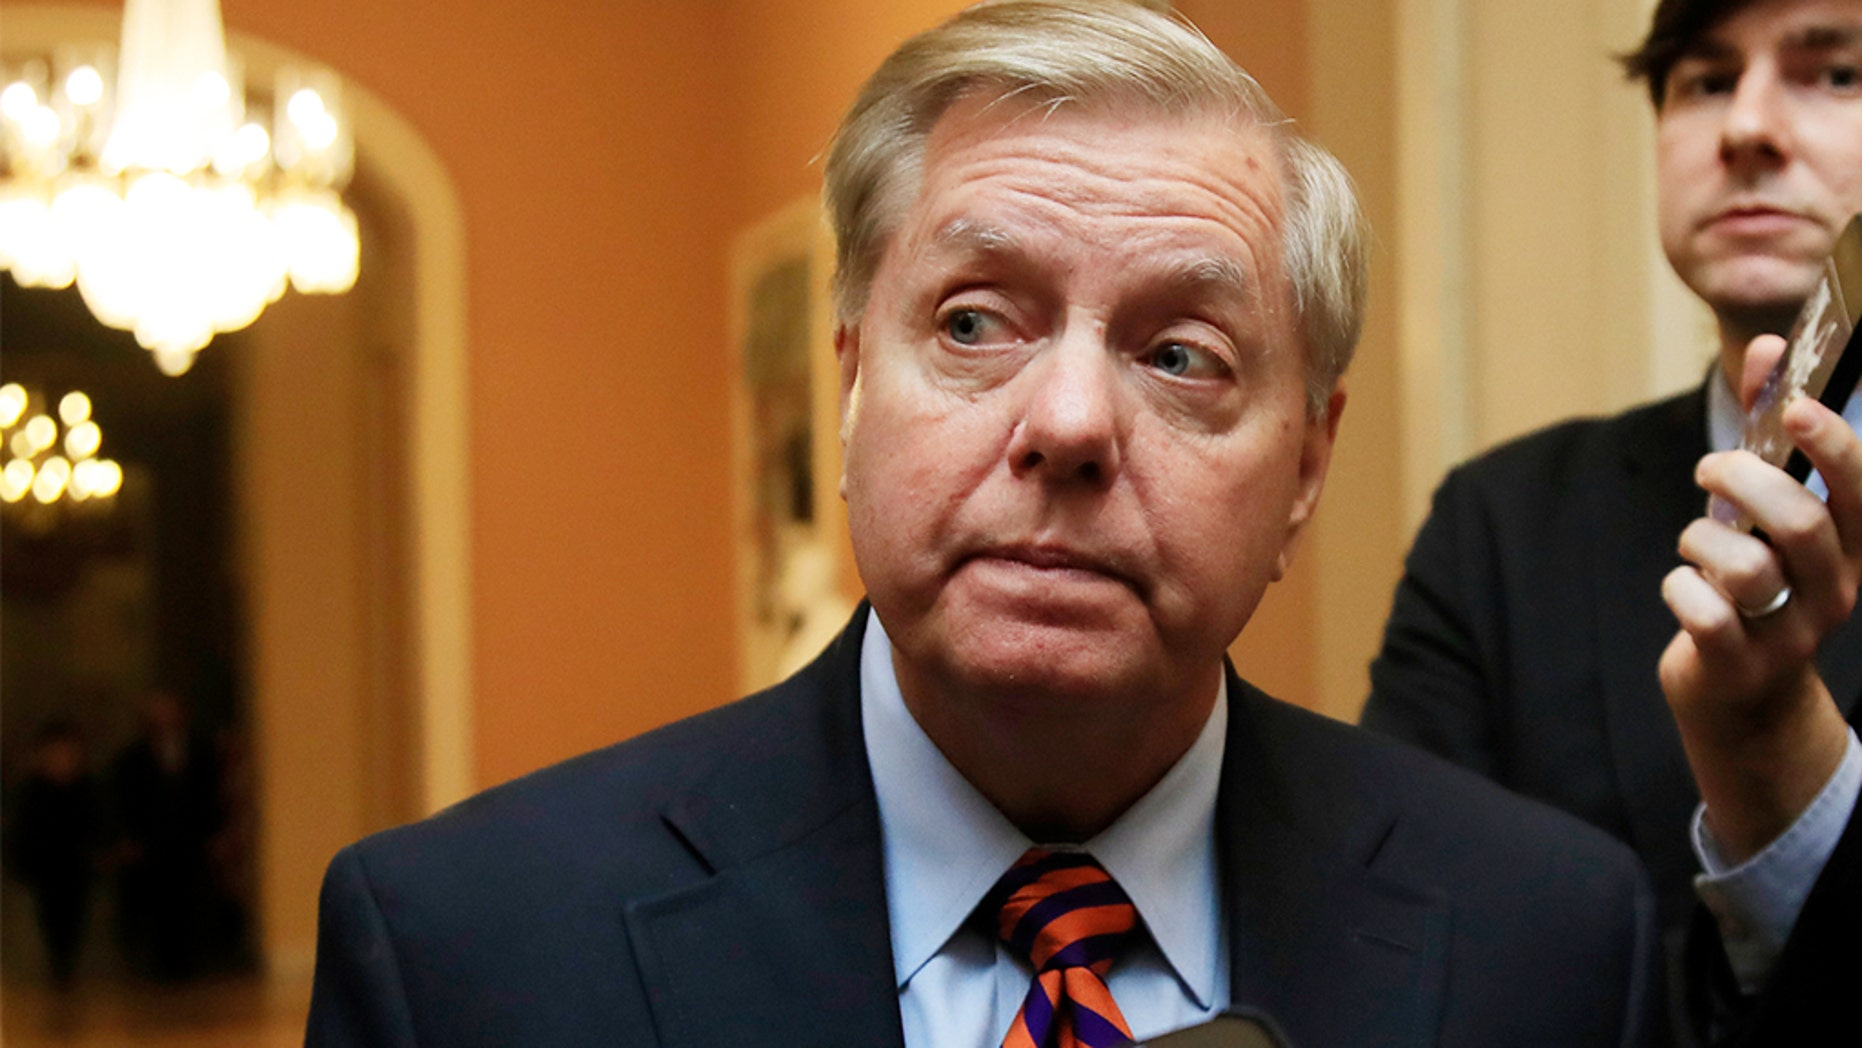 Sen. Lindsey Graham, R-S.C., was elected Wednesday to fulfill the role of chairman of the Senate Judiciary Committee.